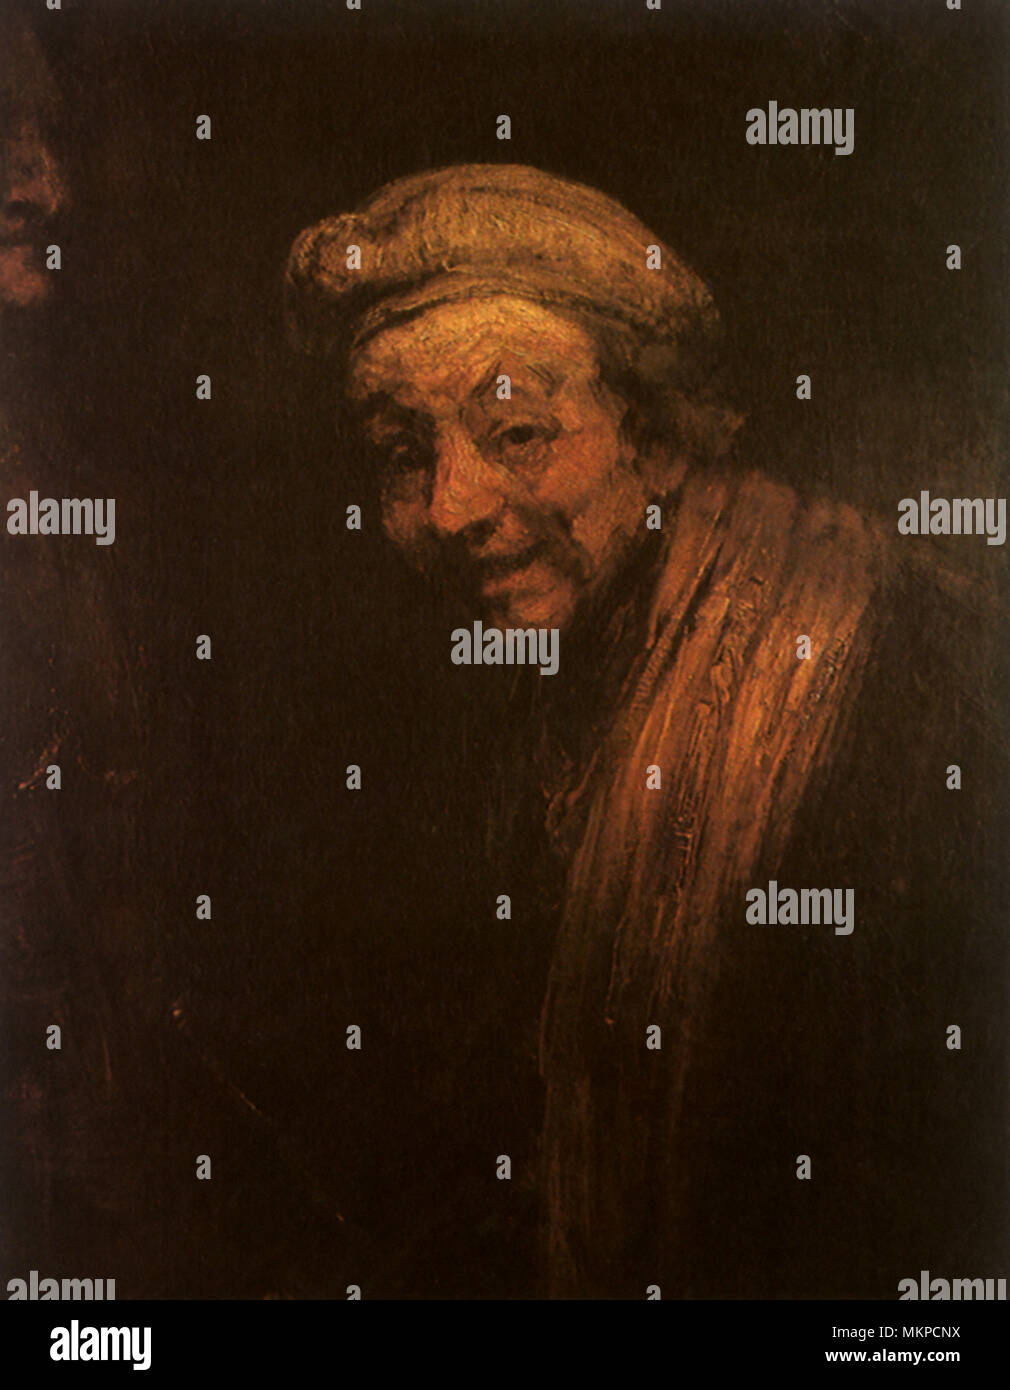 Self-portrait of Rembrandt as Democritus - Stock Image